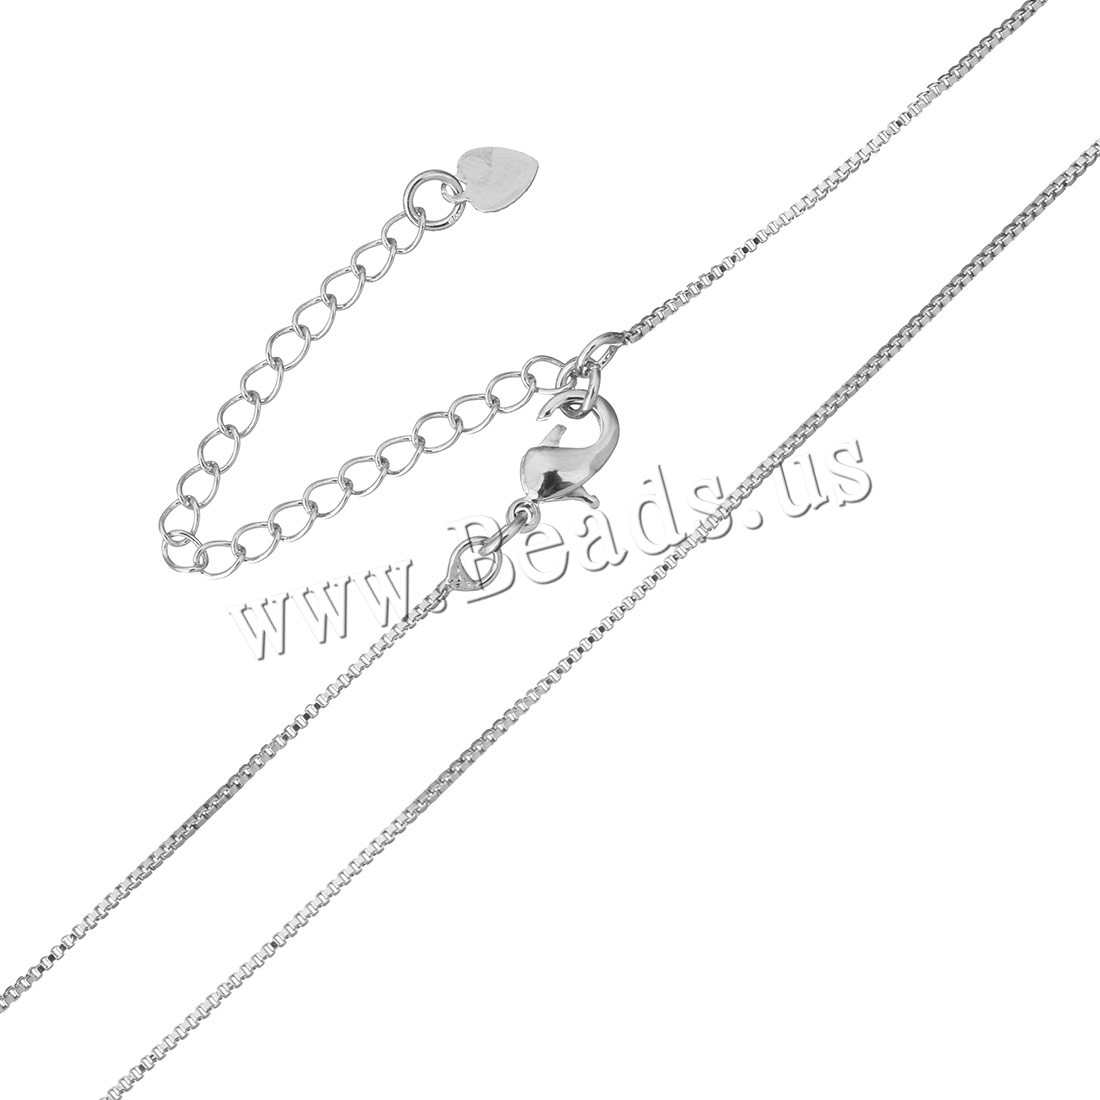 Brass Necklace Chain 2Inch extender chain platinum plated box chain & woman 1mm Length:Approx 18 Inch 50Strands/Bag Sold Bag